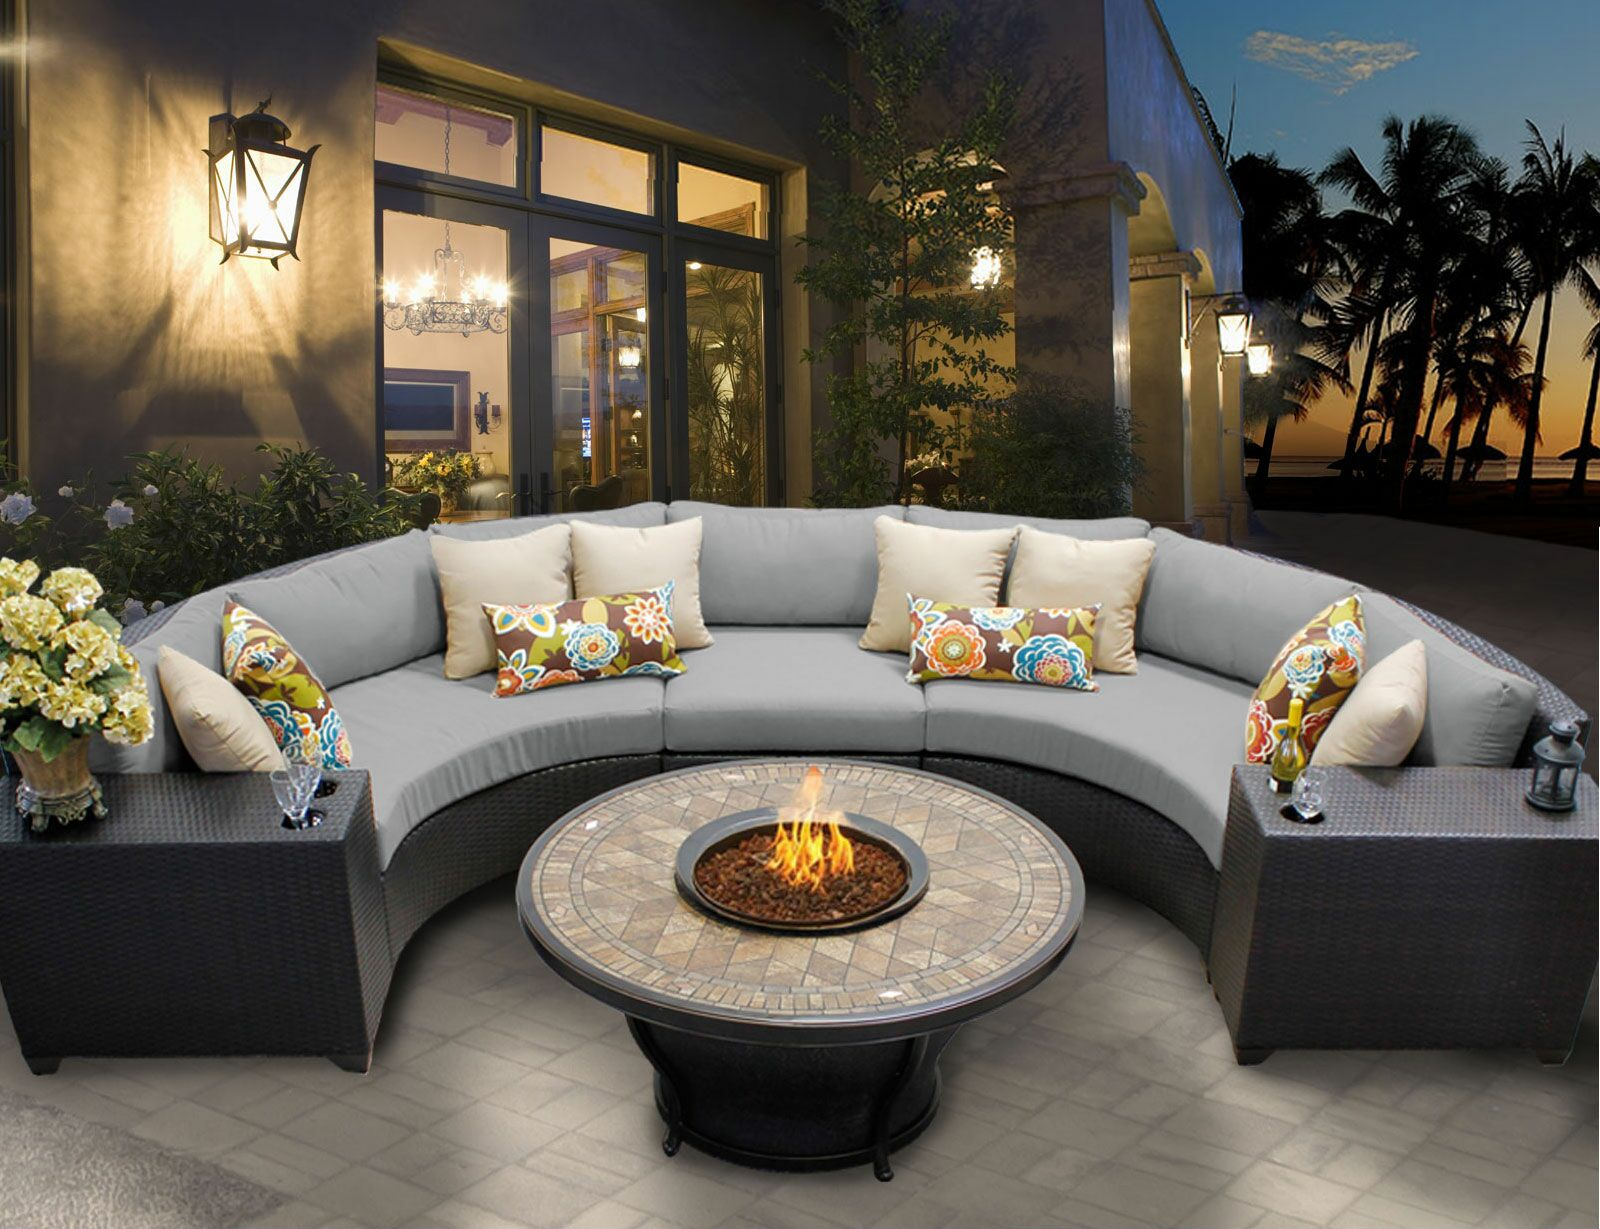 Barbados 6 Rattan Sectional Set with Cushions Fabric: Gray